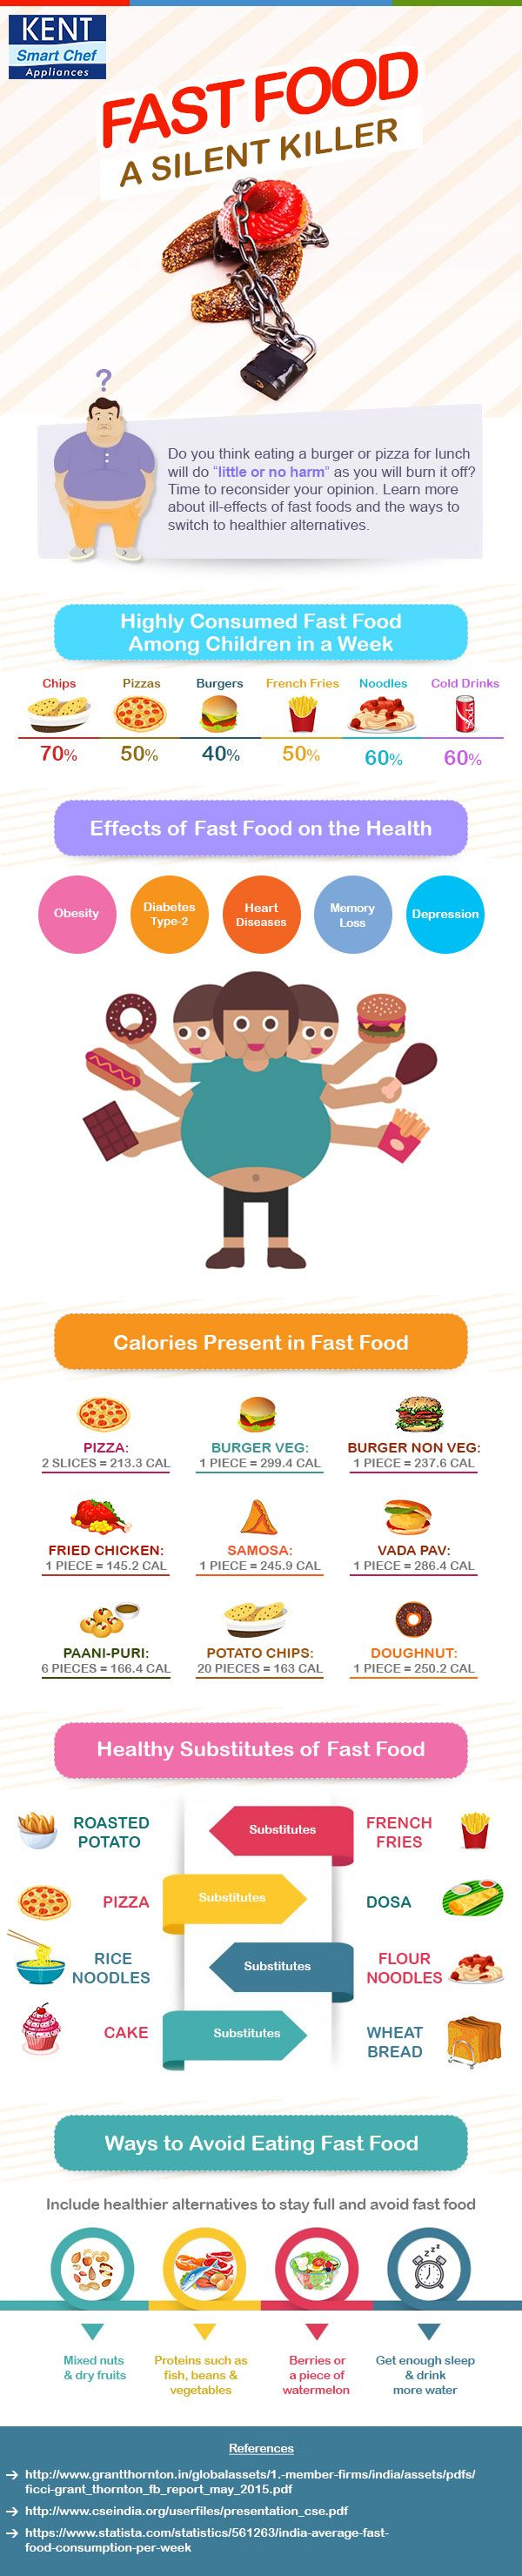 "Fast Food- A Silent Killer |  Do you think eating a pizza or burger for lunch will do ""little or no harm"" as you will burn it off? Time to reconsider you opinion. Children love eating fast foods. However, regular intake of fast foods can lead to a number of serious health problems among children. The infographics depict the harmful effects of junk foods and the ways to switch to healthier option for junk foods."